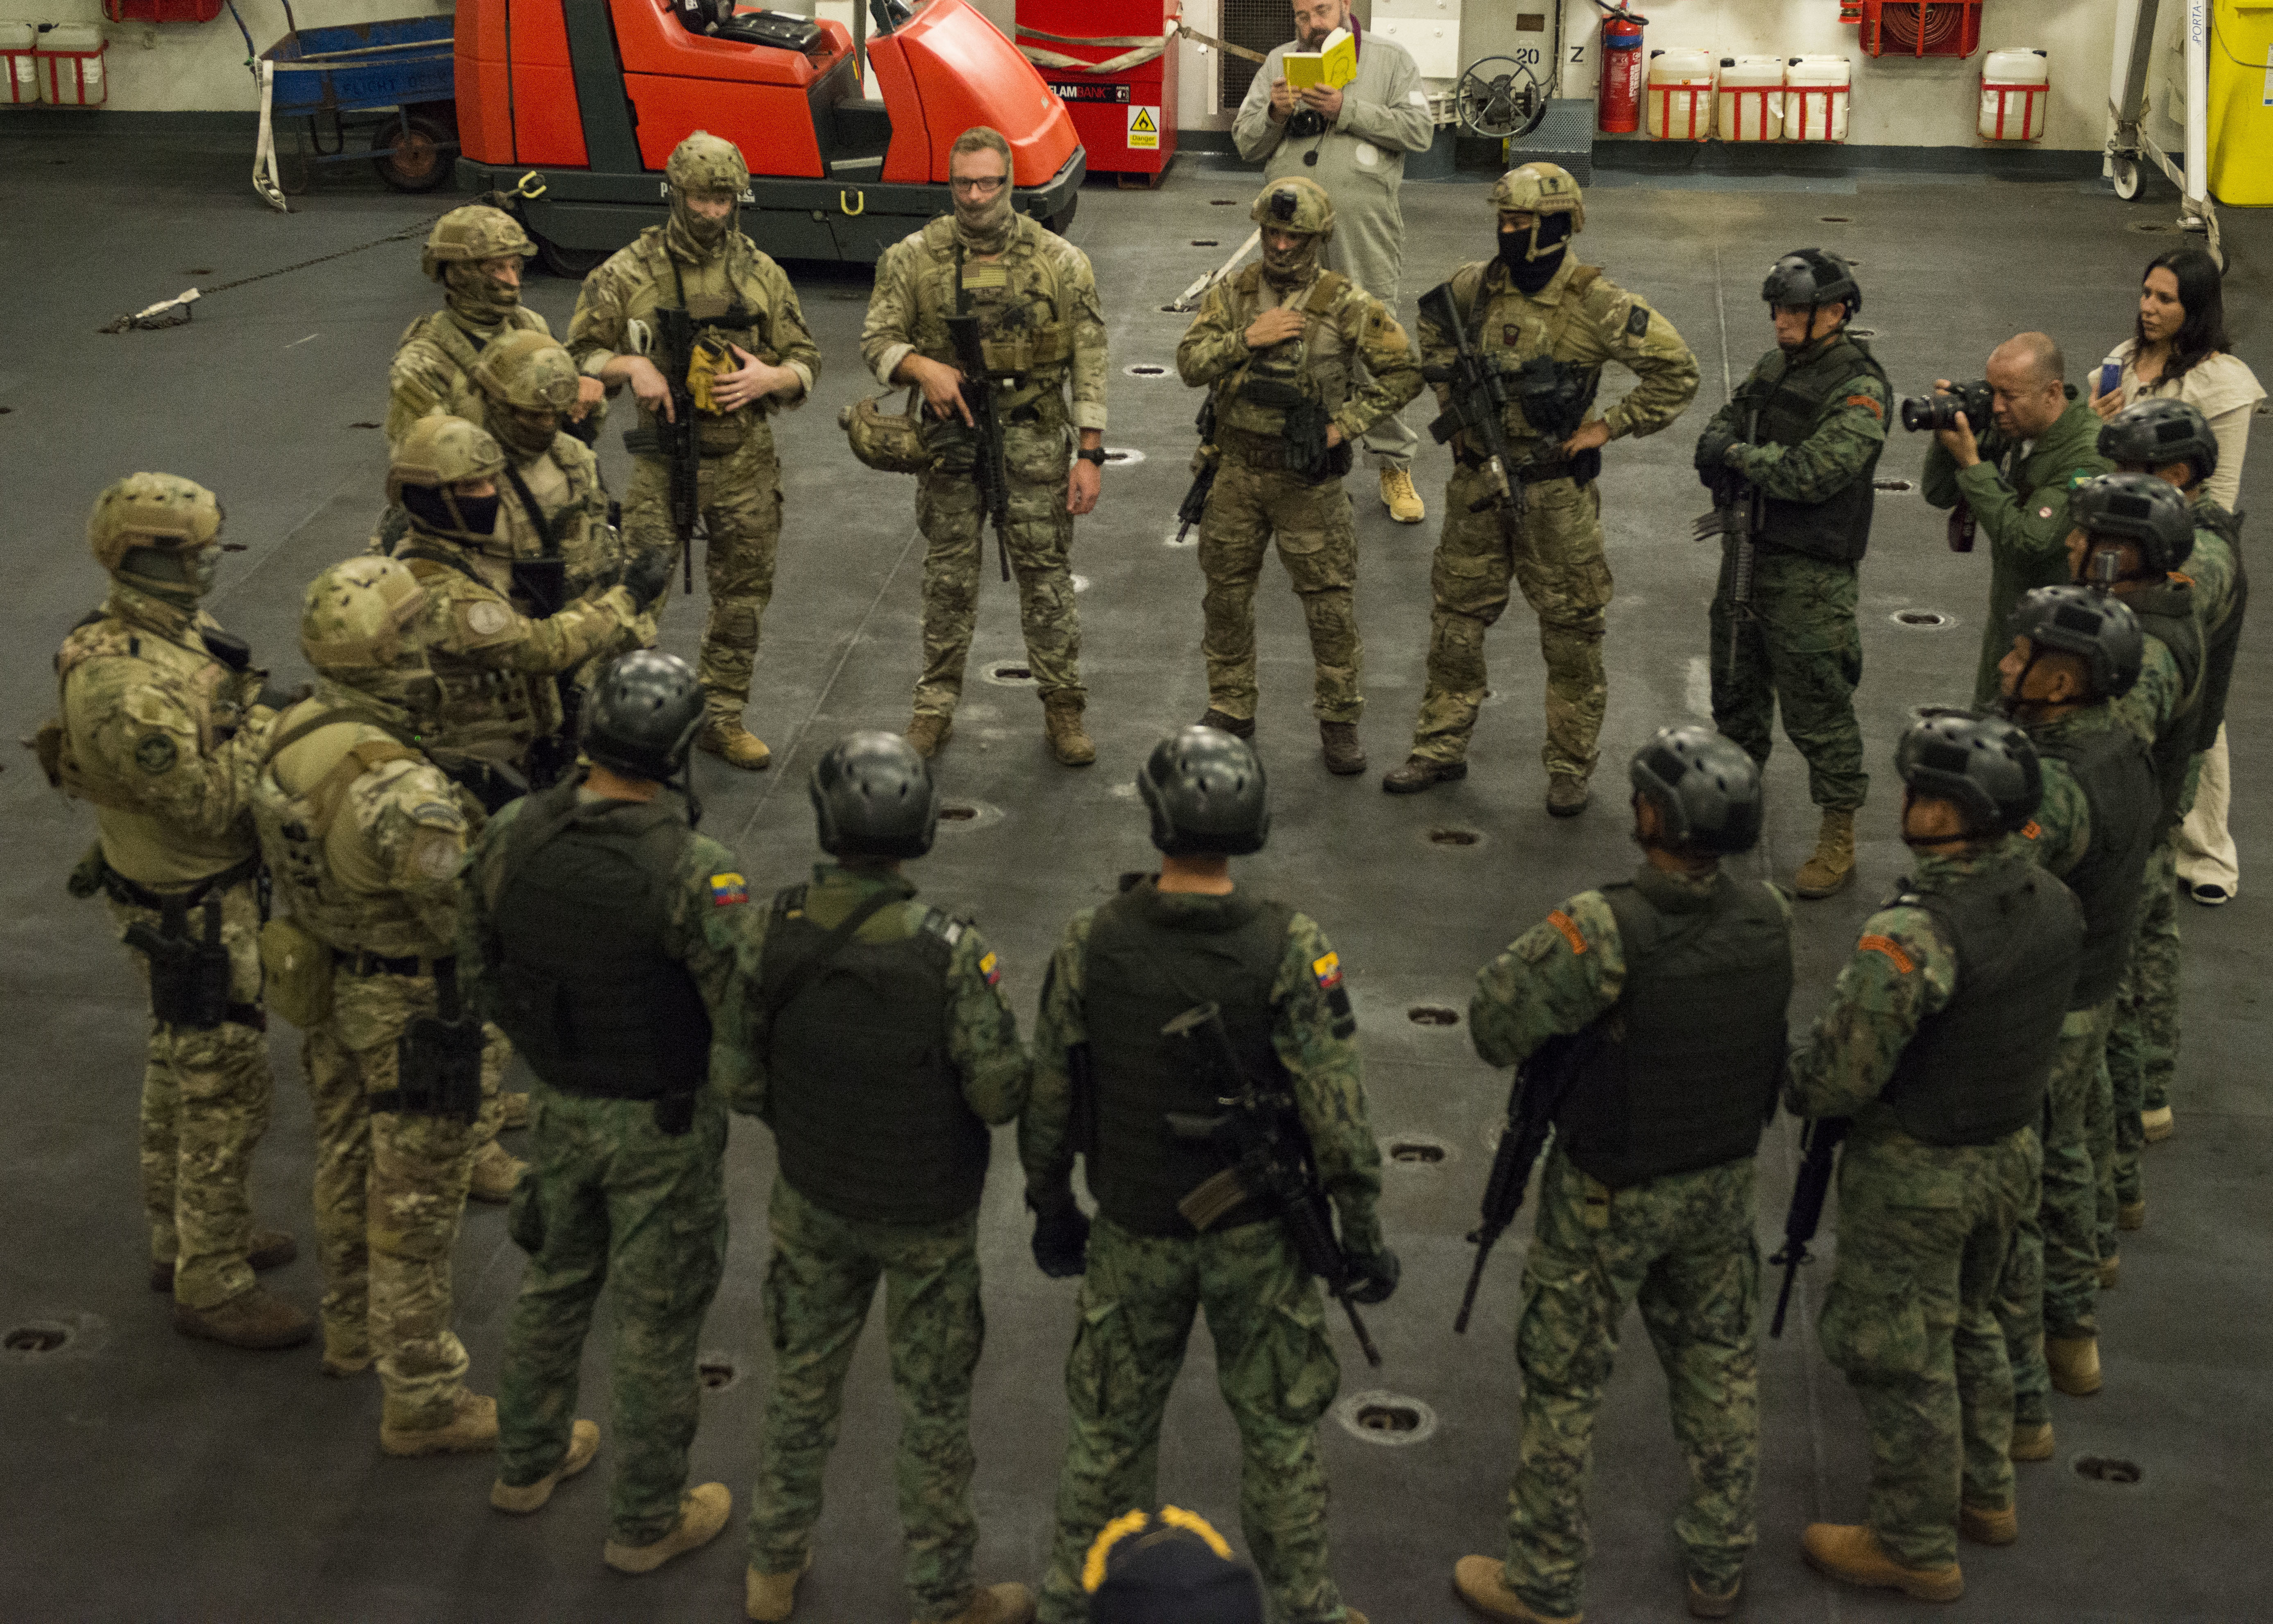 Military personnel gather in a group for a briefing.